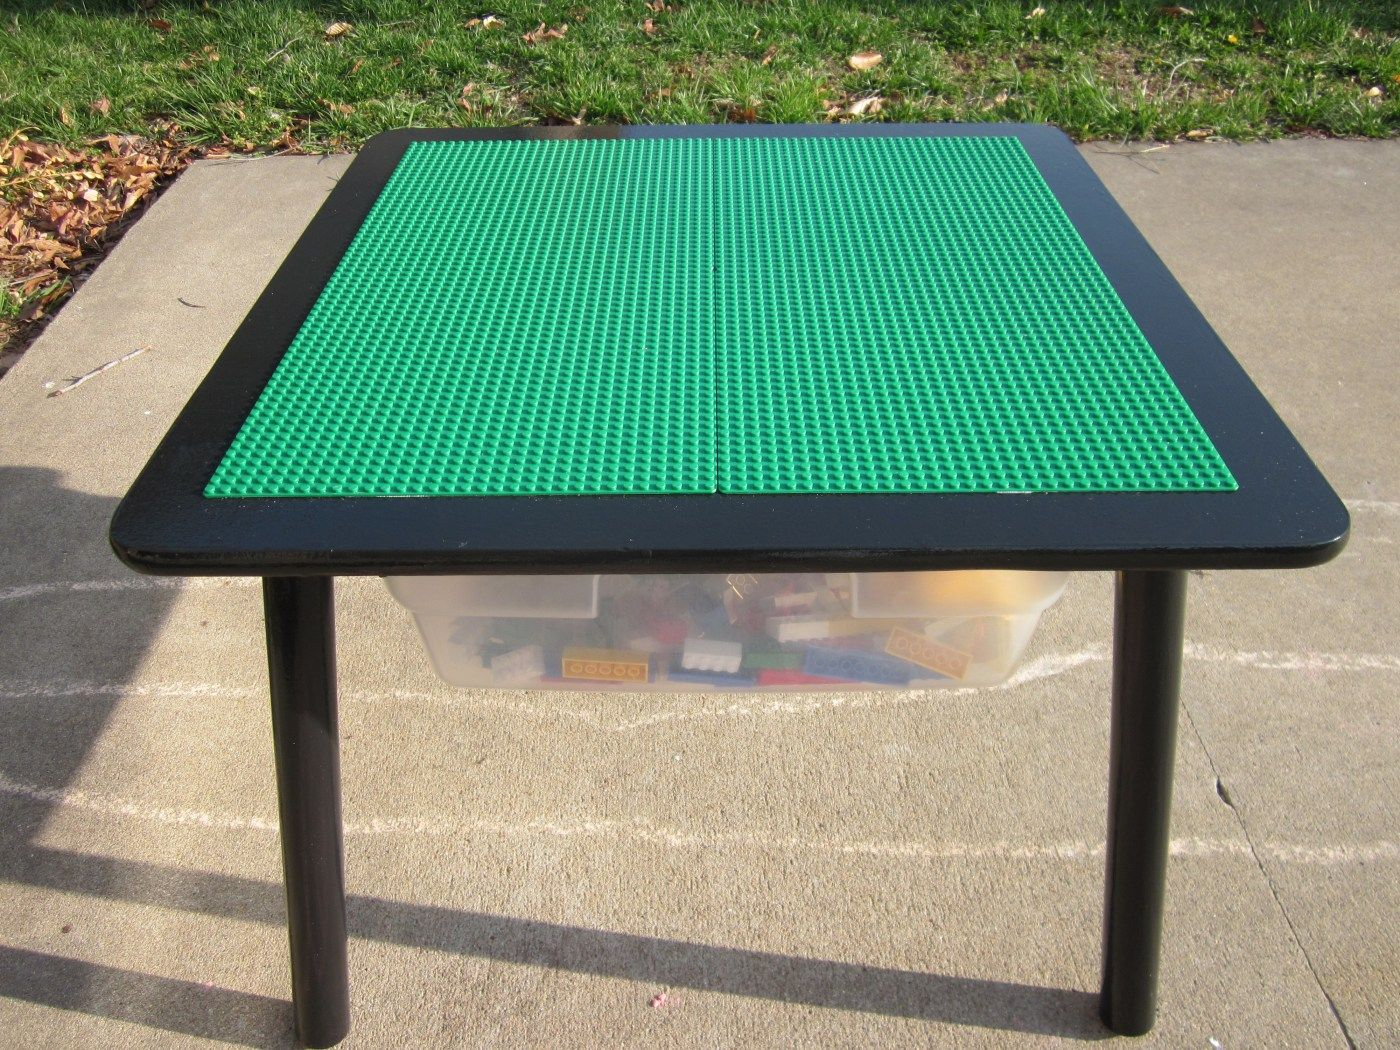 diy lego table gonna have this in my house